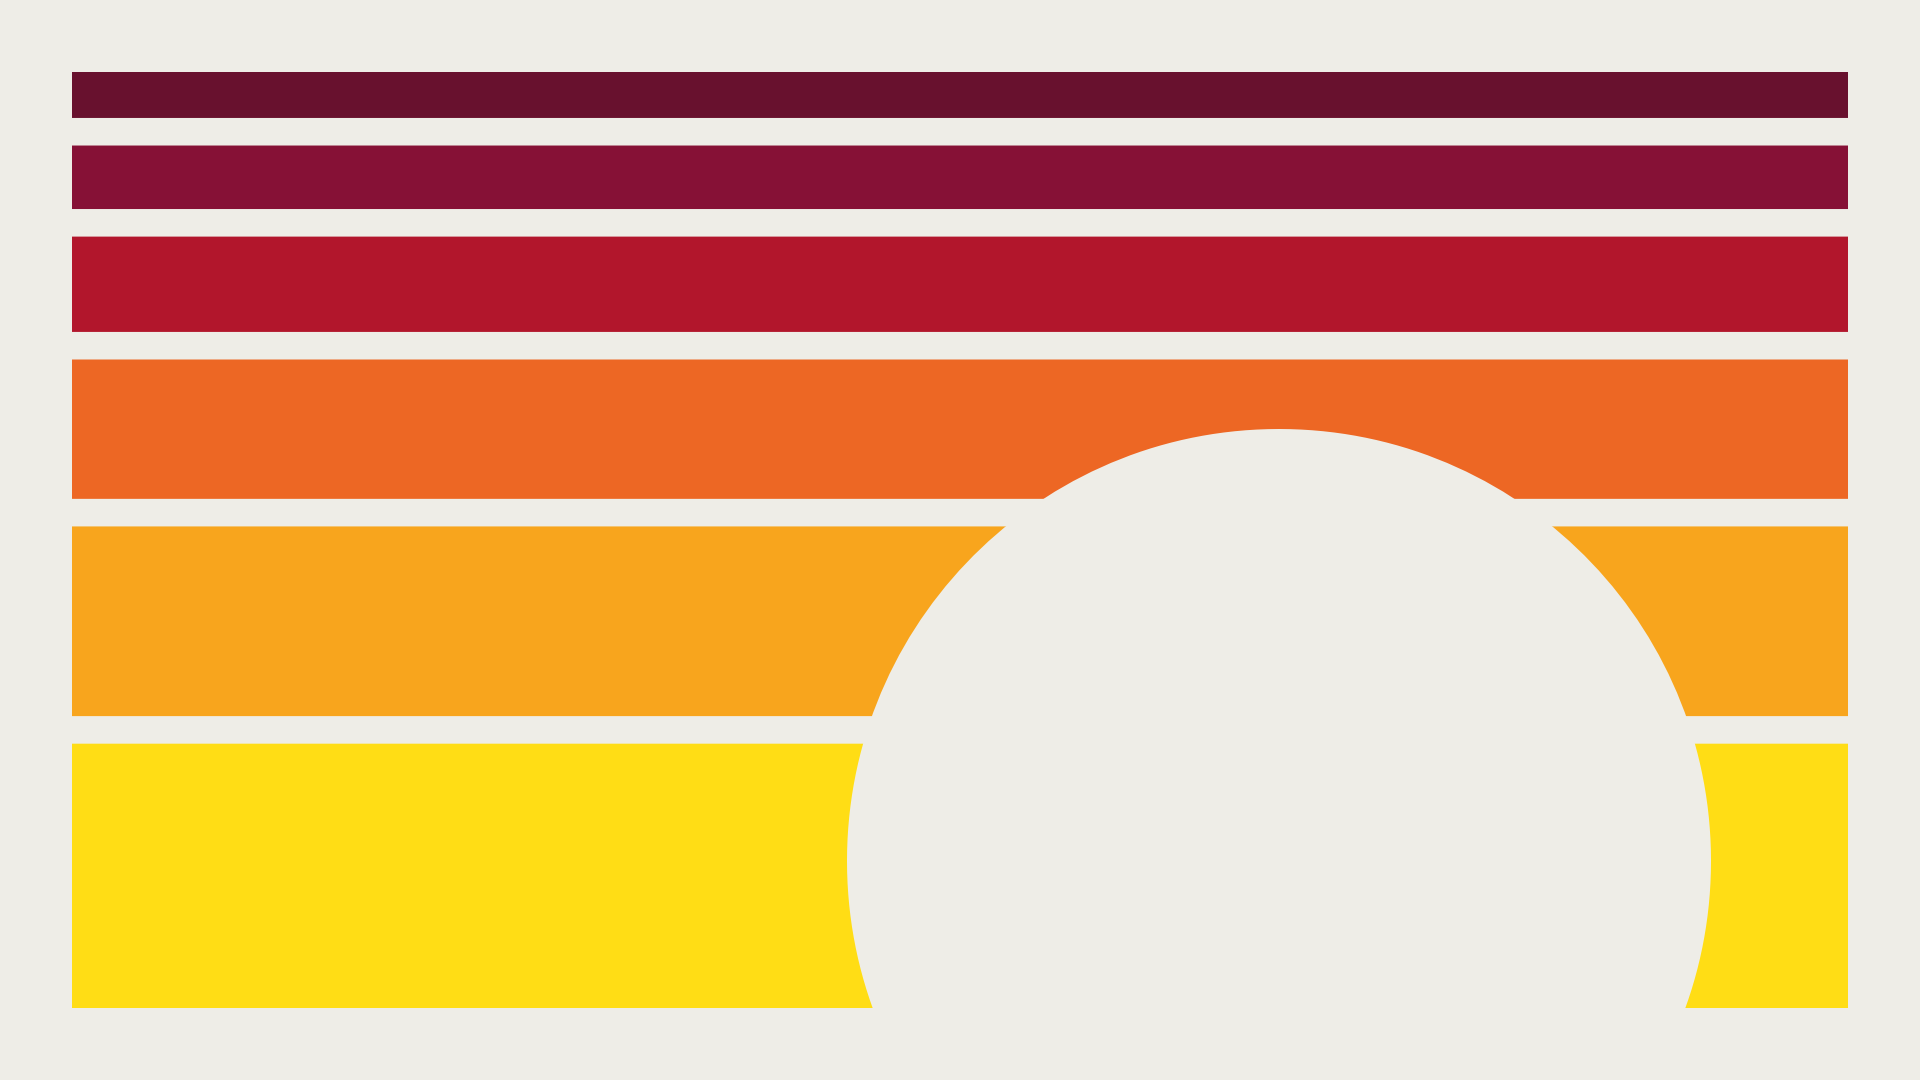 horizontal sunset-colored lines with a circular silhouette